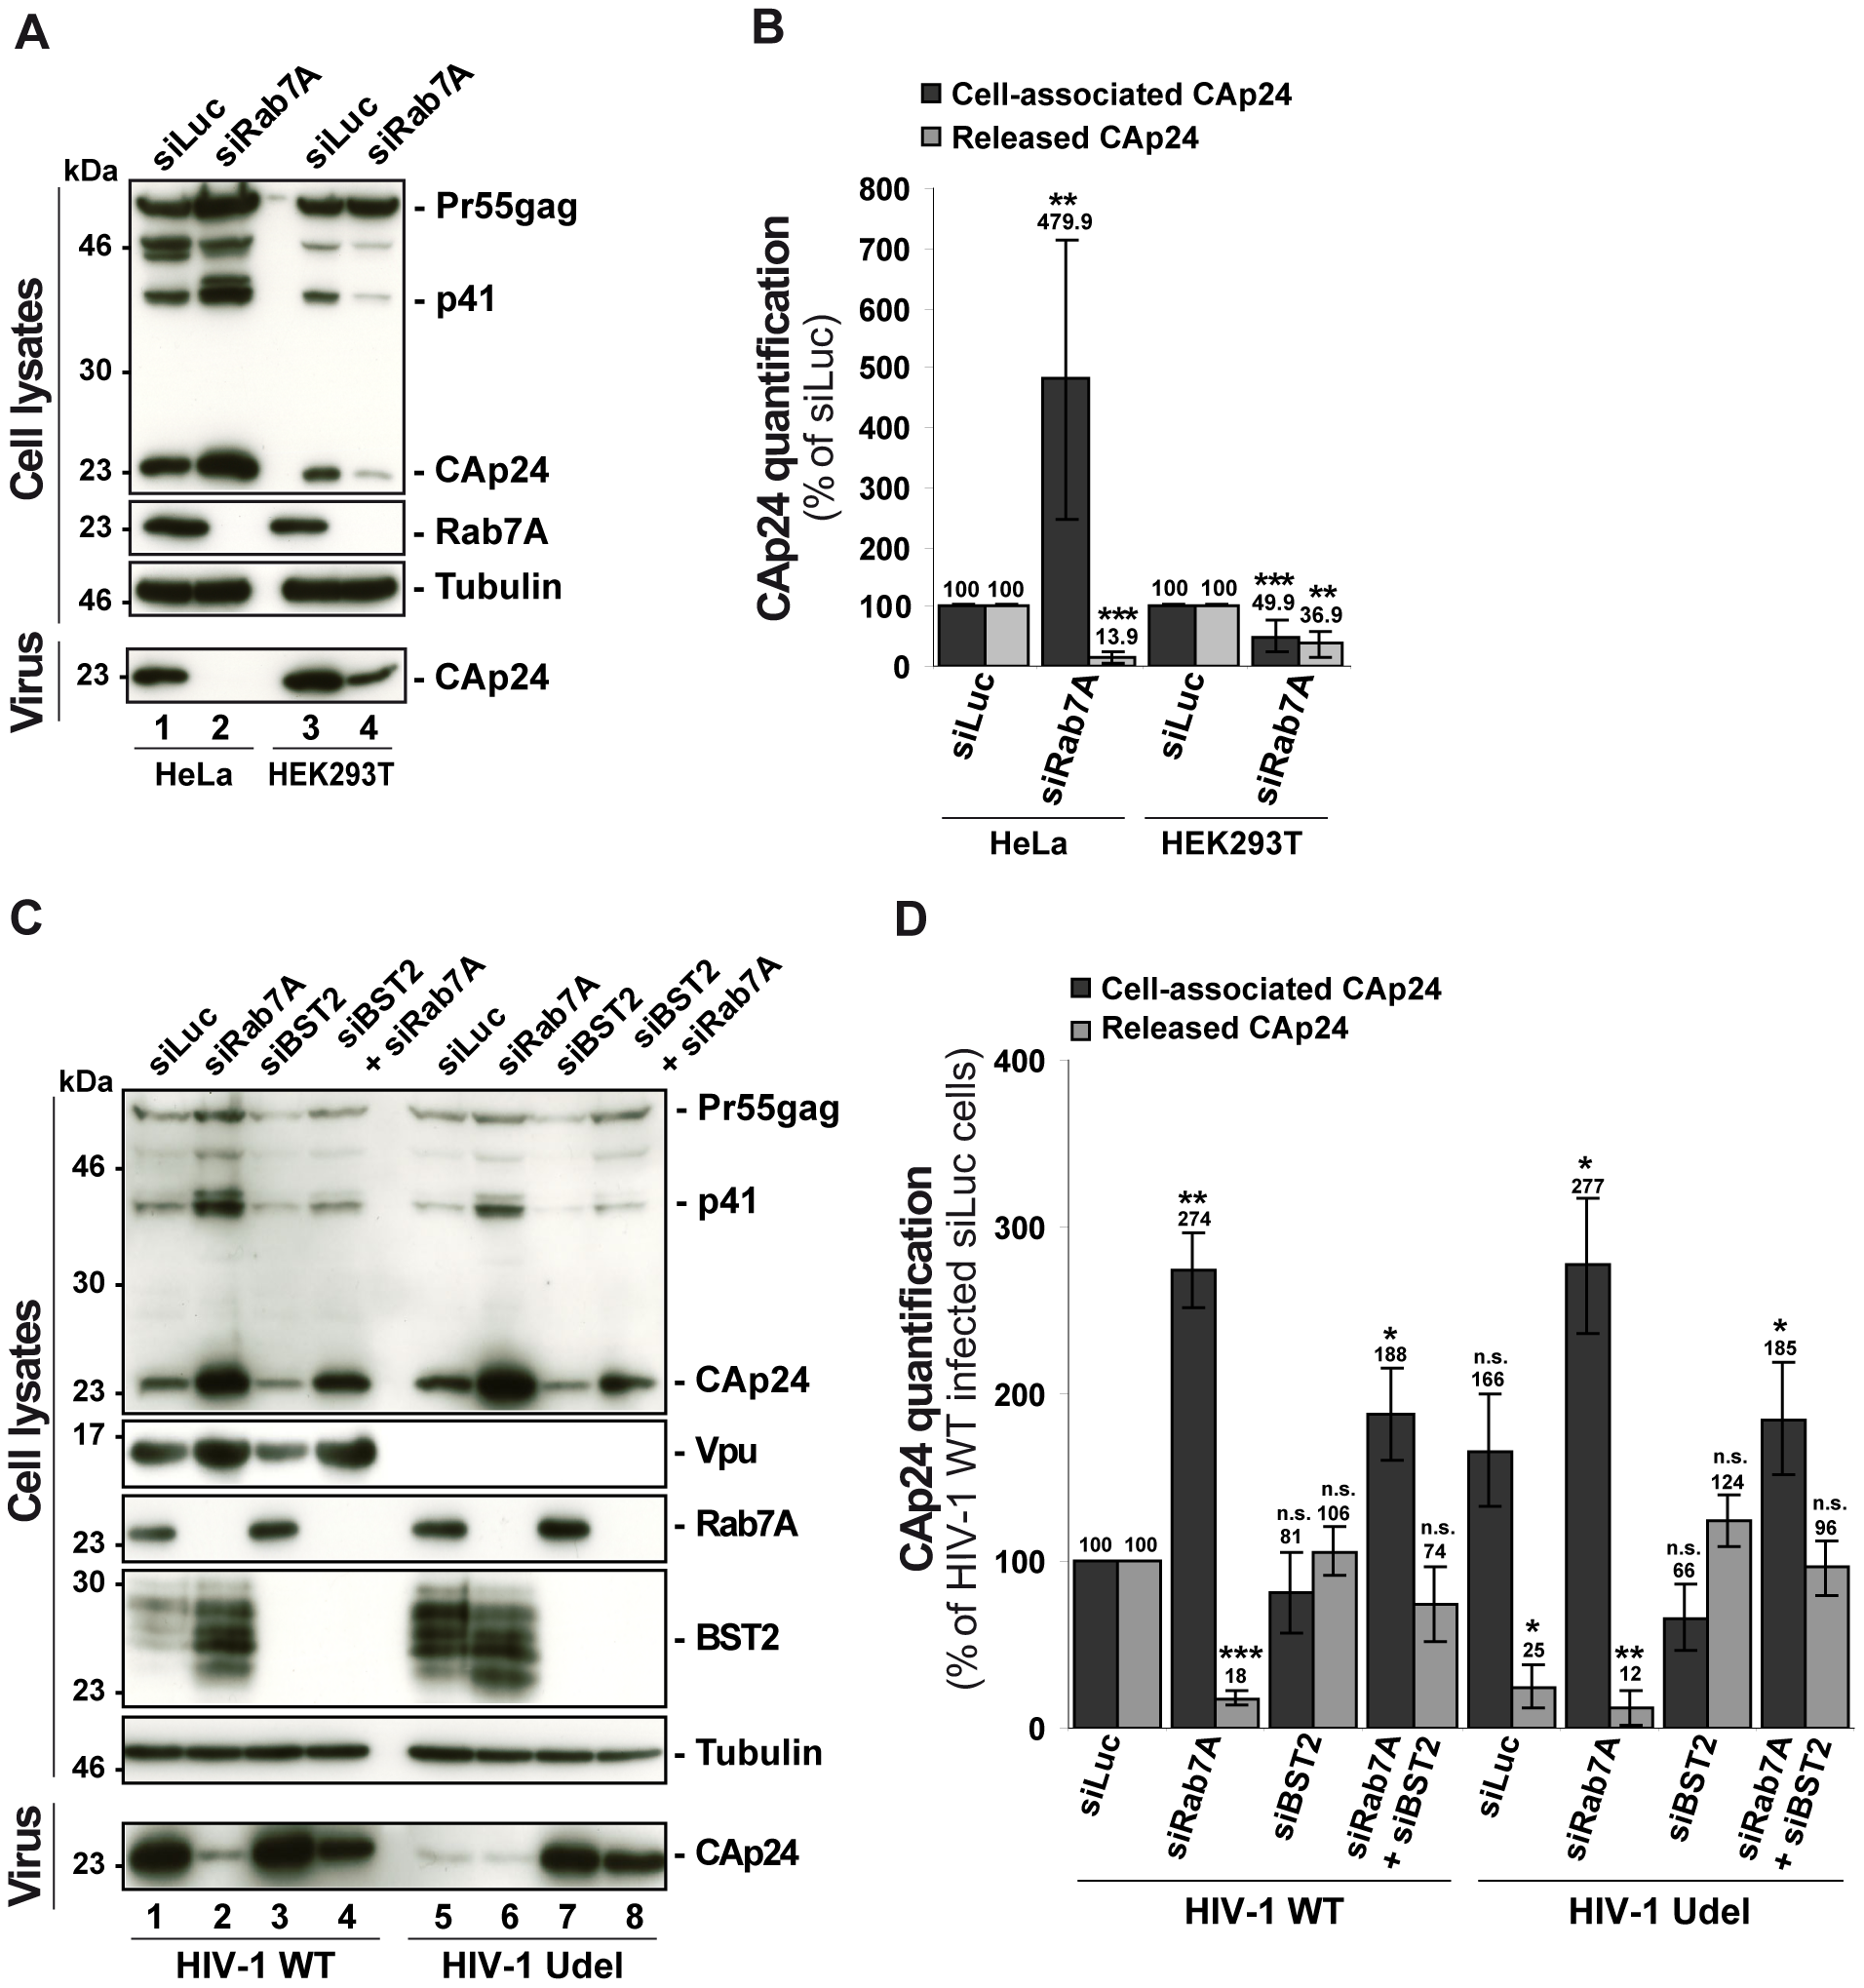 Reduced HIV-1 release after depletion of Rab7A is related to expression of the restriction factor BST2.